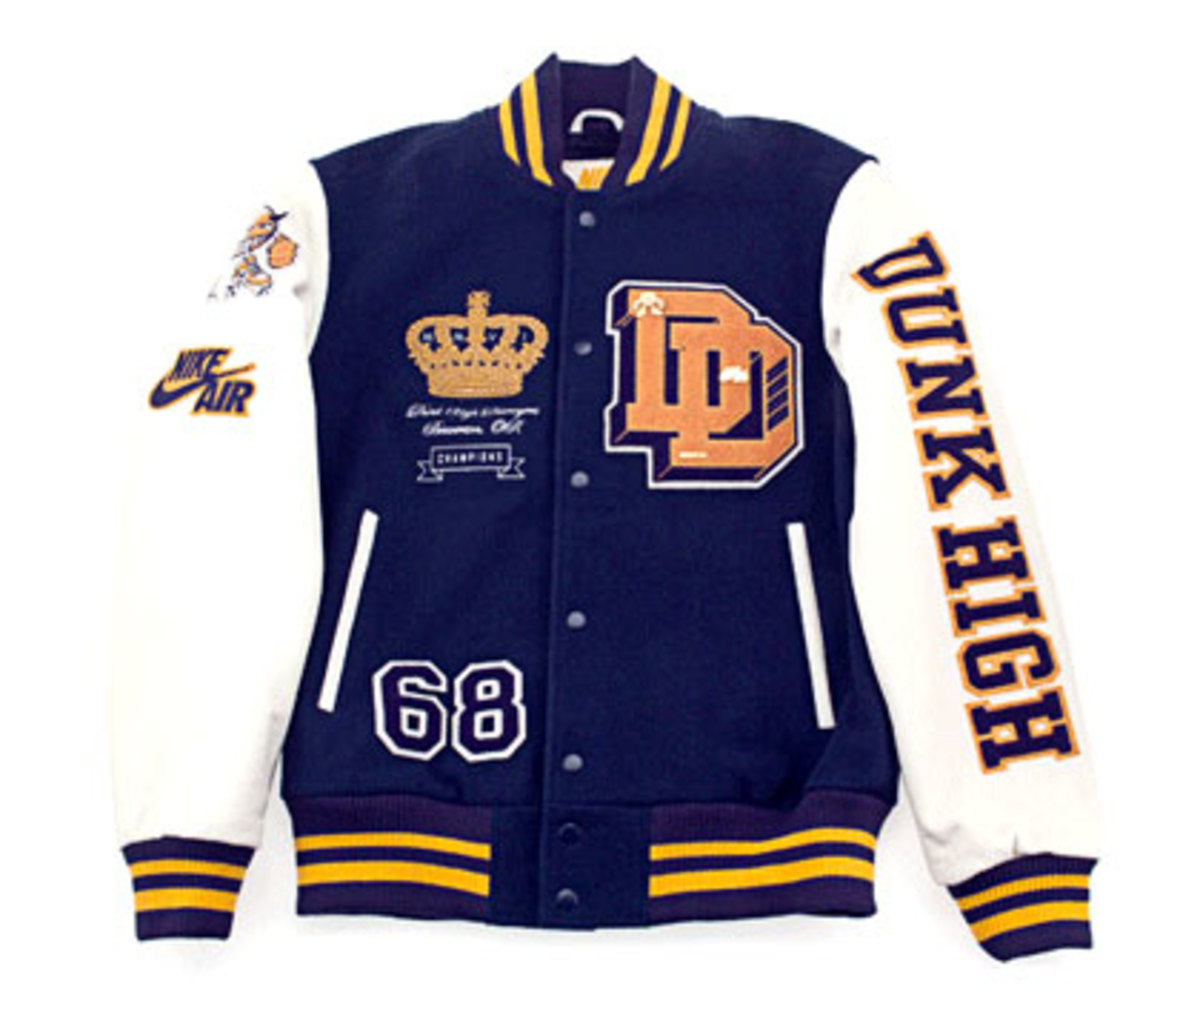 Nike x Destroyers - Dunk High + Letterman Jacket - 4